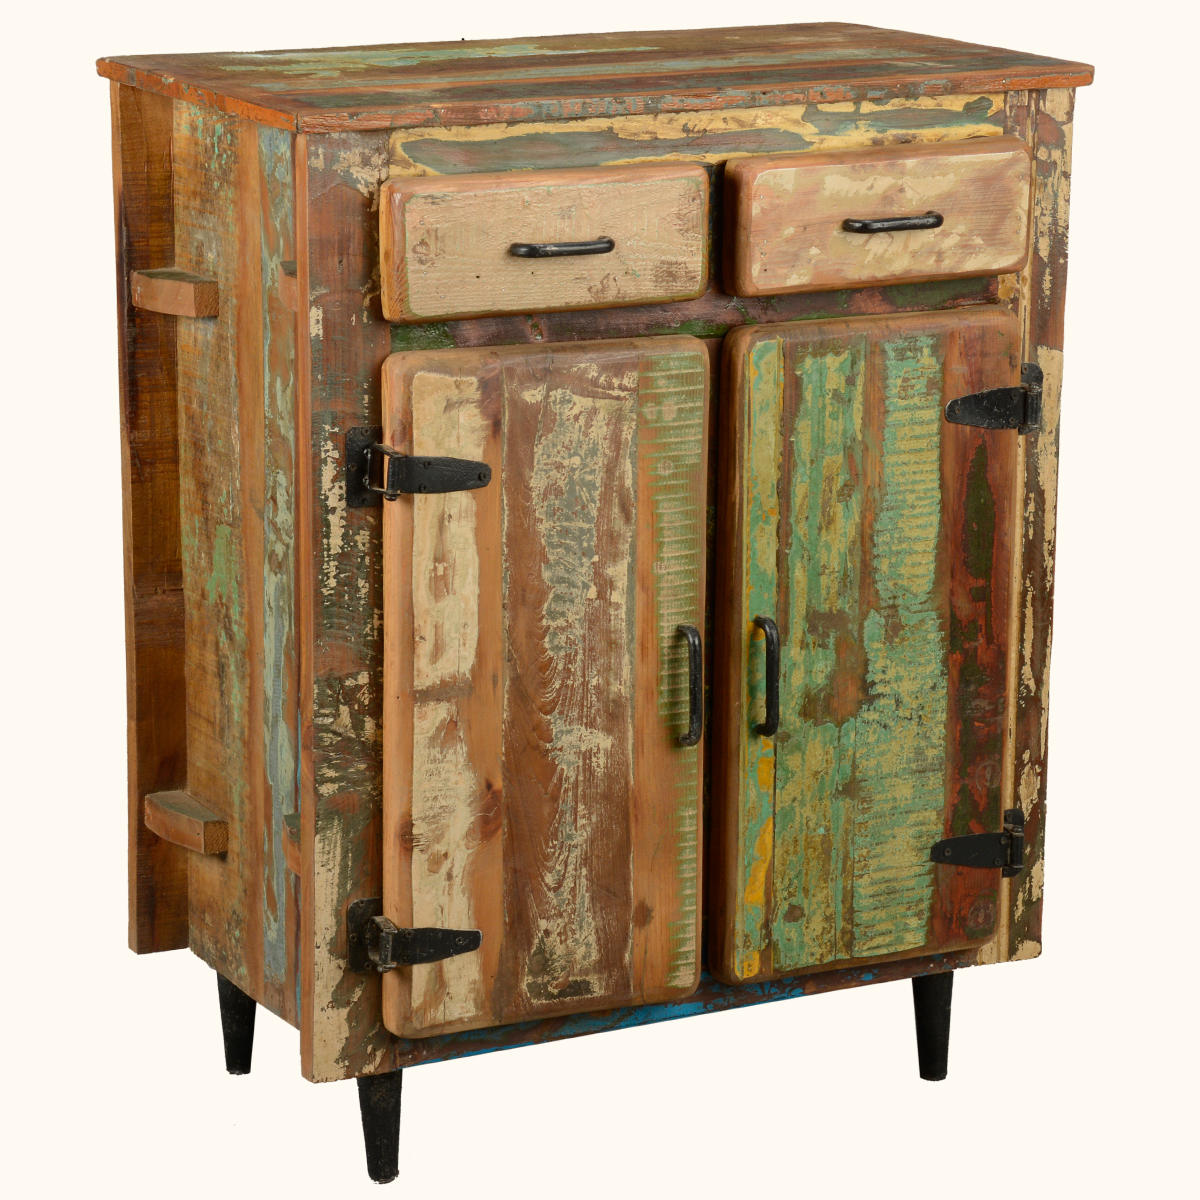 Reclaimed Old Wood Rustic Kitchen Utility Storage Cabinet Buffet Table Sidebo